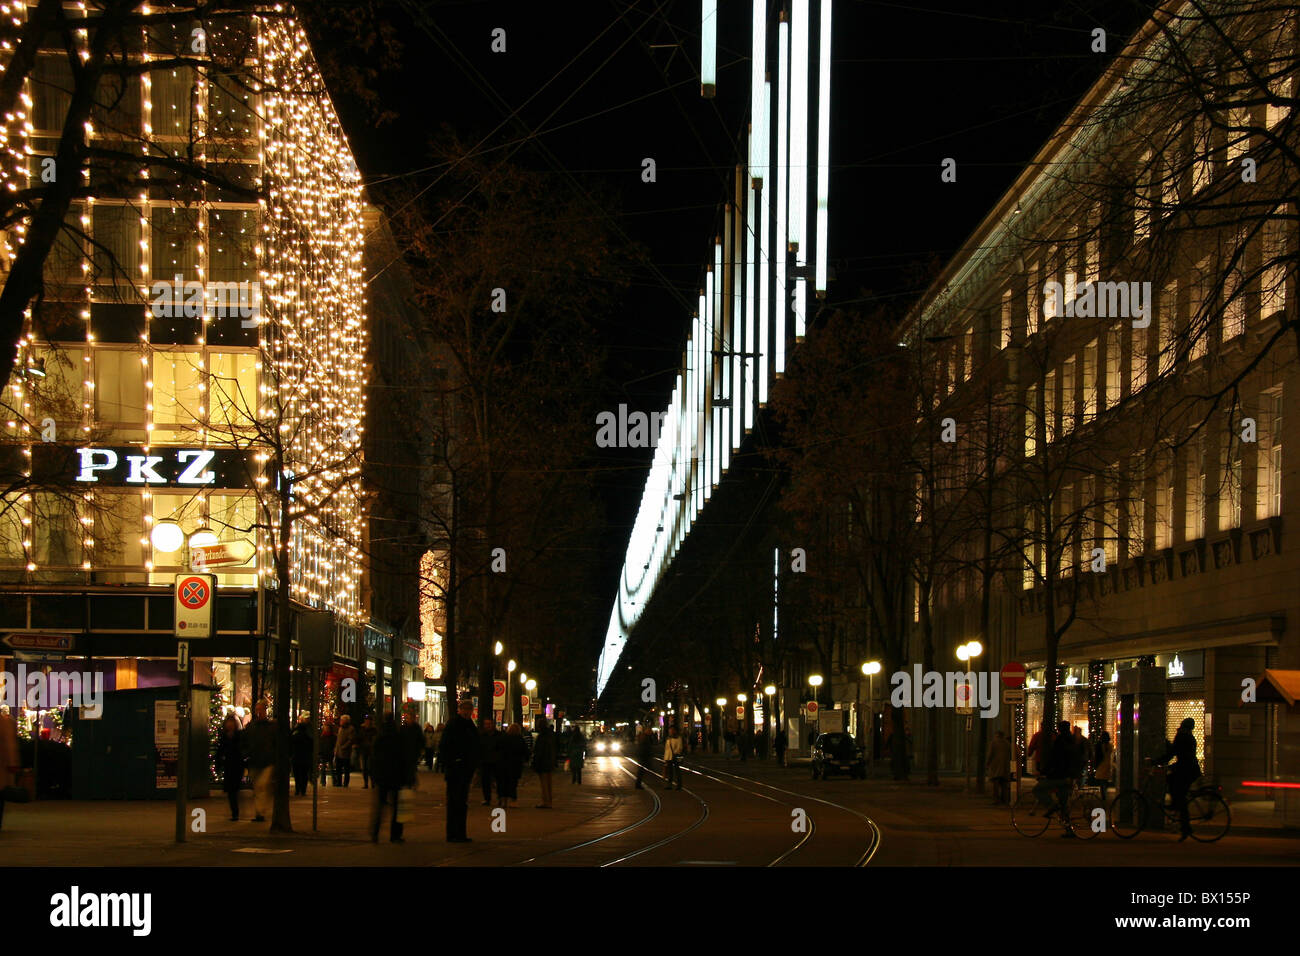 zurich town city christmas bahnhofstrasse stockfotos zurich town city christmas bahnhofstrasse. Black Bedroom Furniture Sets. Home Design Ideas